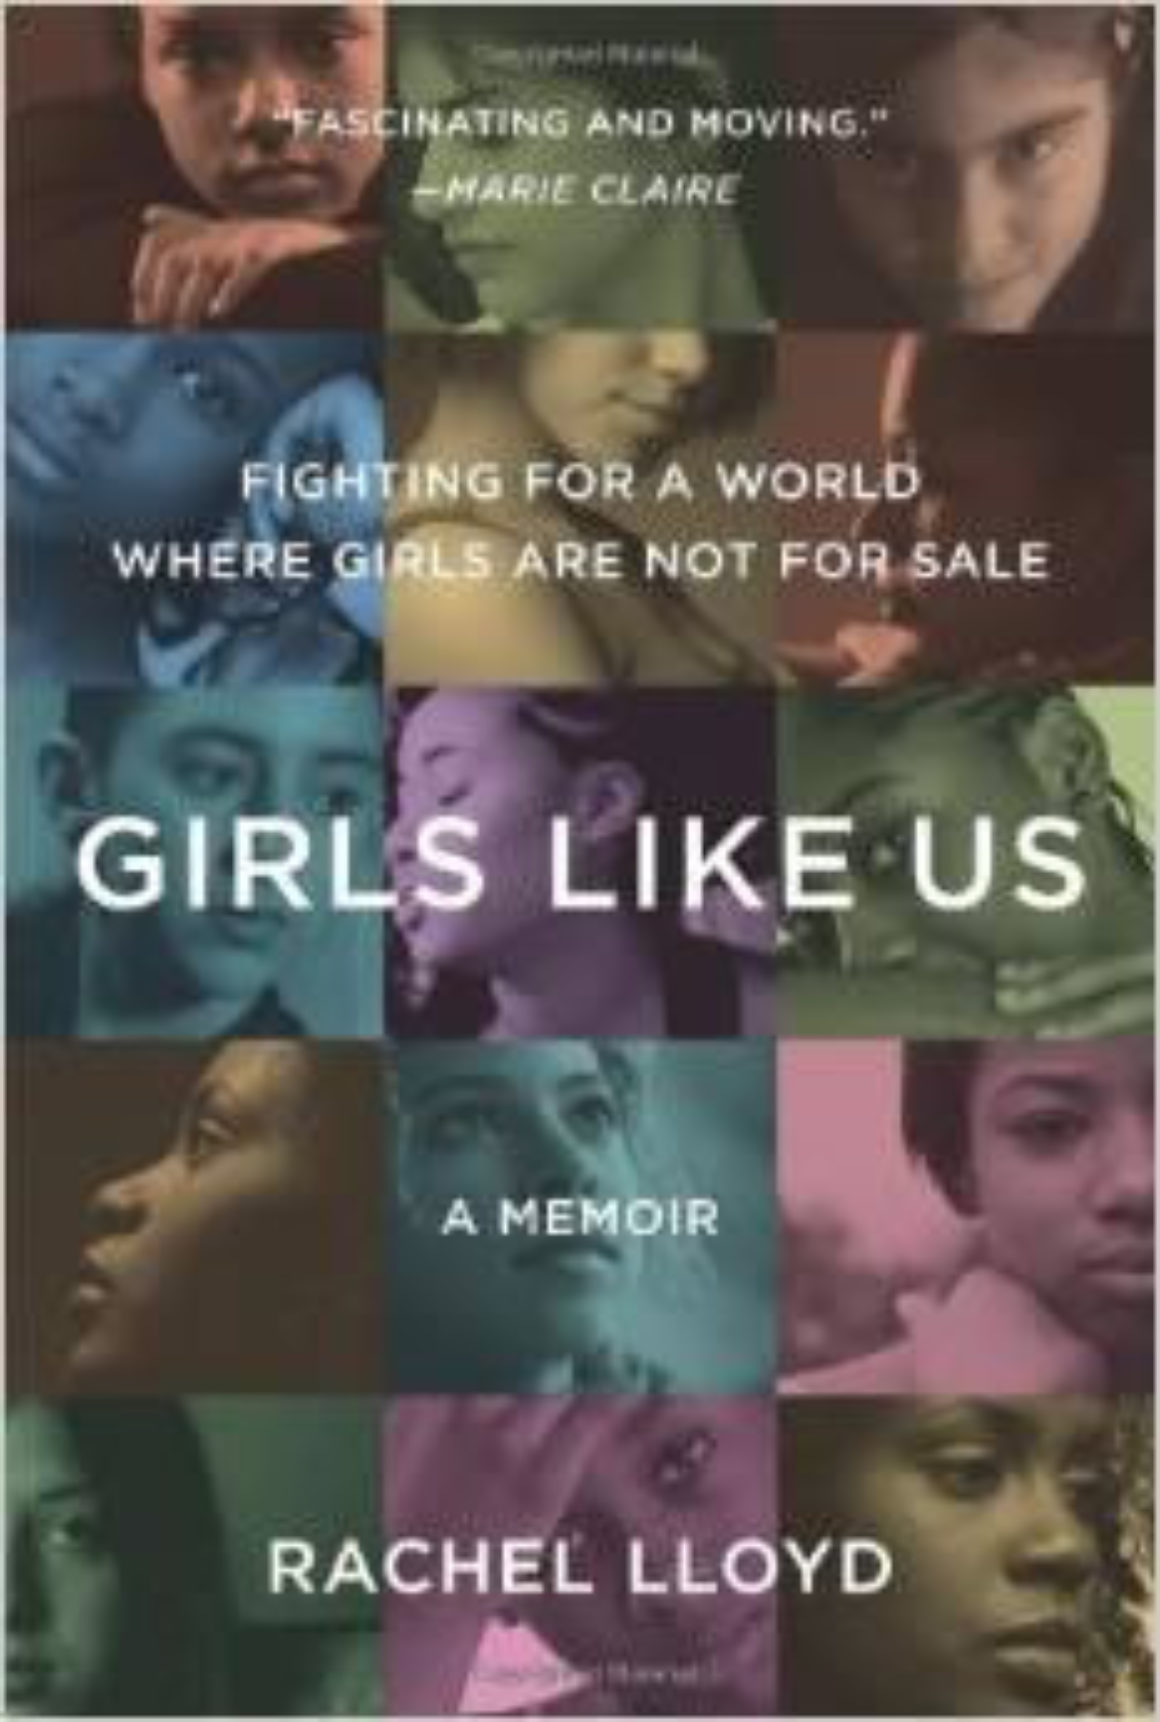 book-cover-girls-like-us-fighting-for-a-world-where-girls-are-not-for-sale-a-memoir